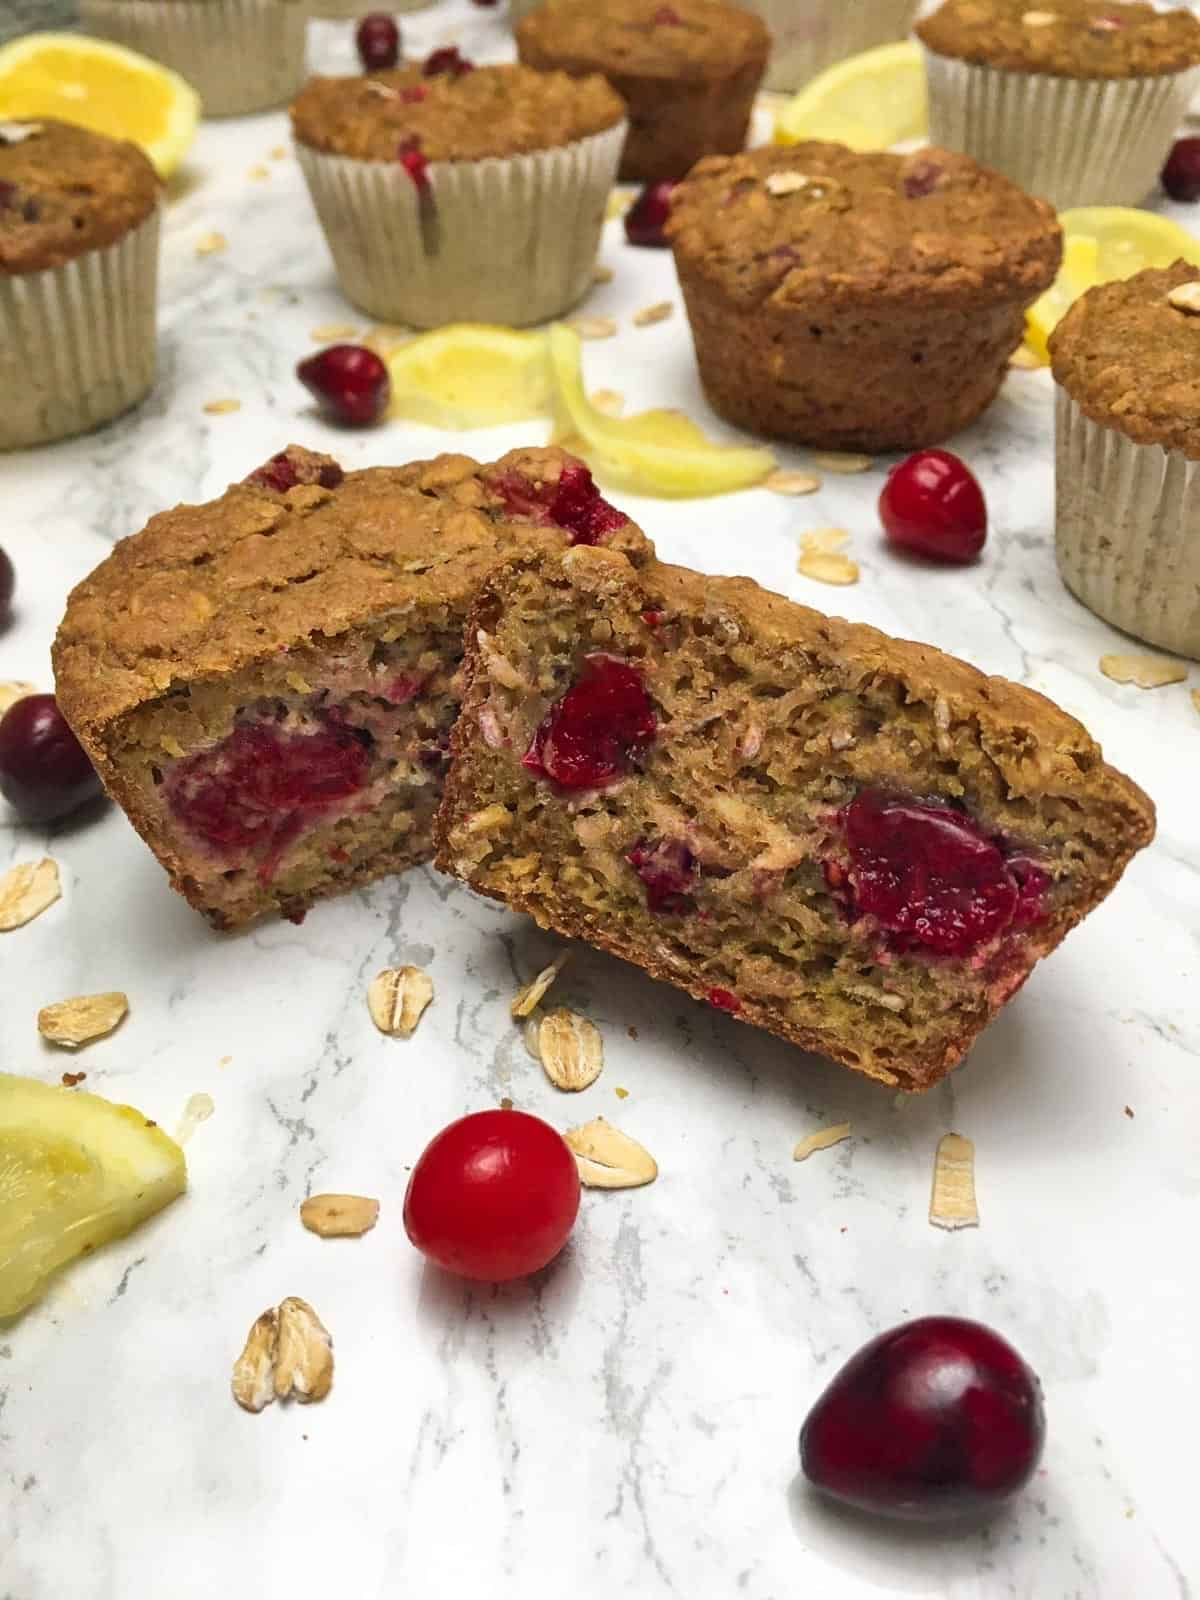 Cranberry muffin sliced in half with more muffins behind.